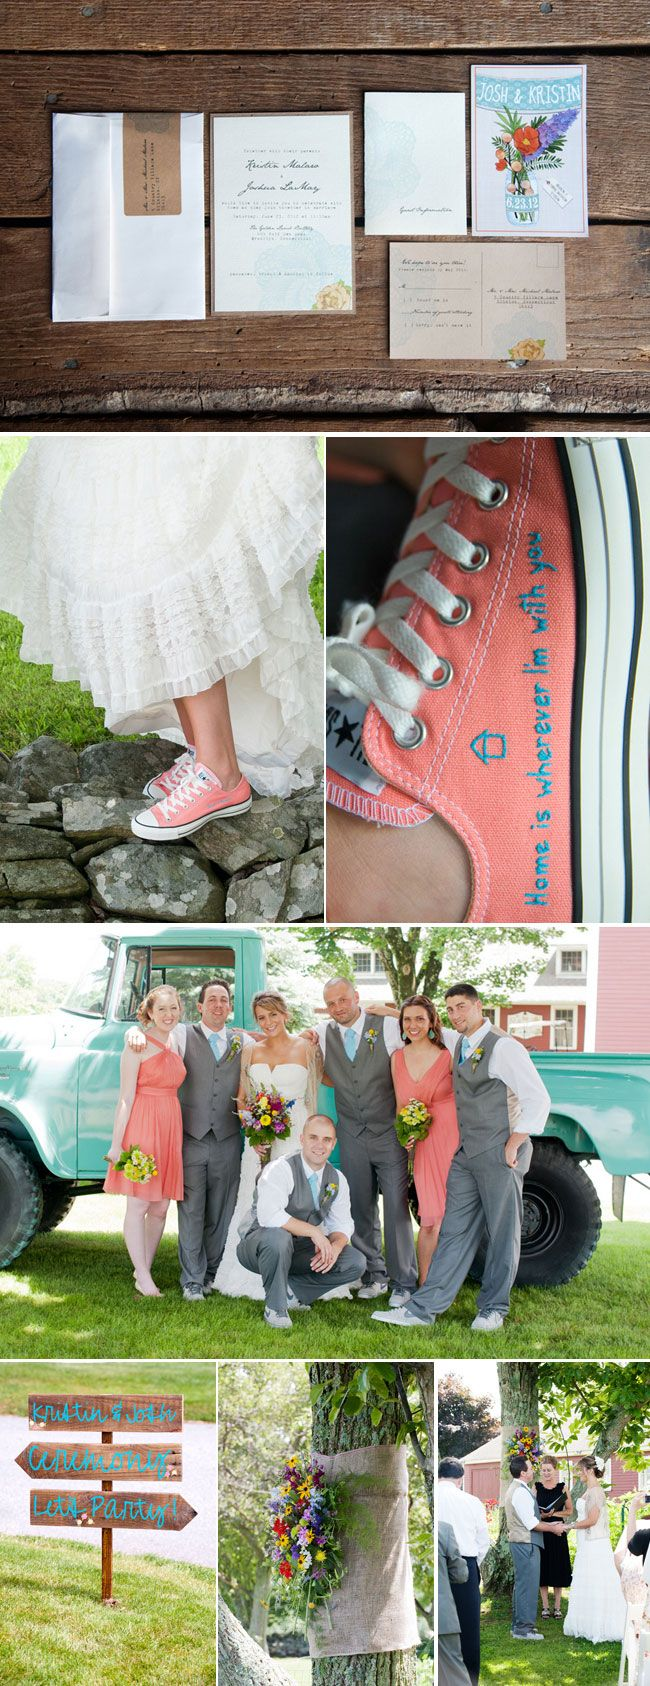 Love the Converse stitching and the colors! Edward sharpe and the magnetic zeros  LOVE!!!